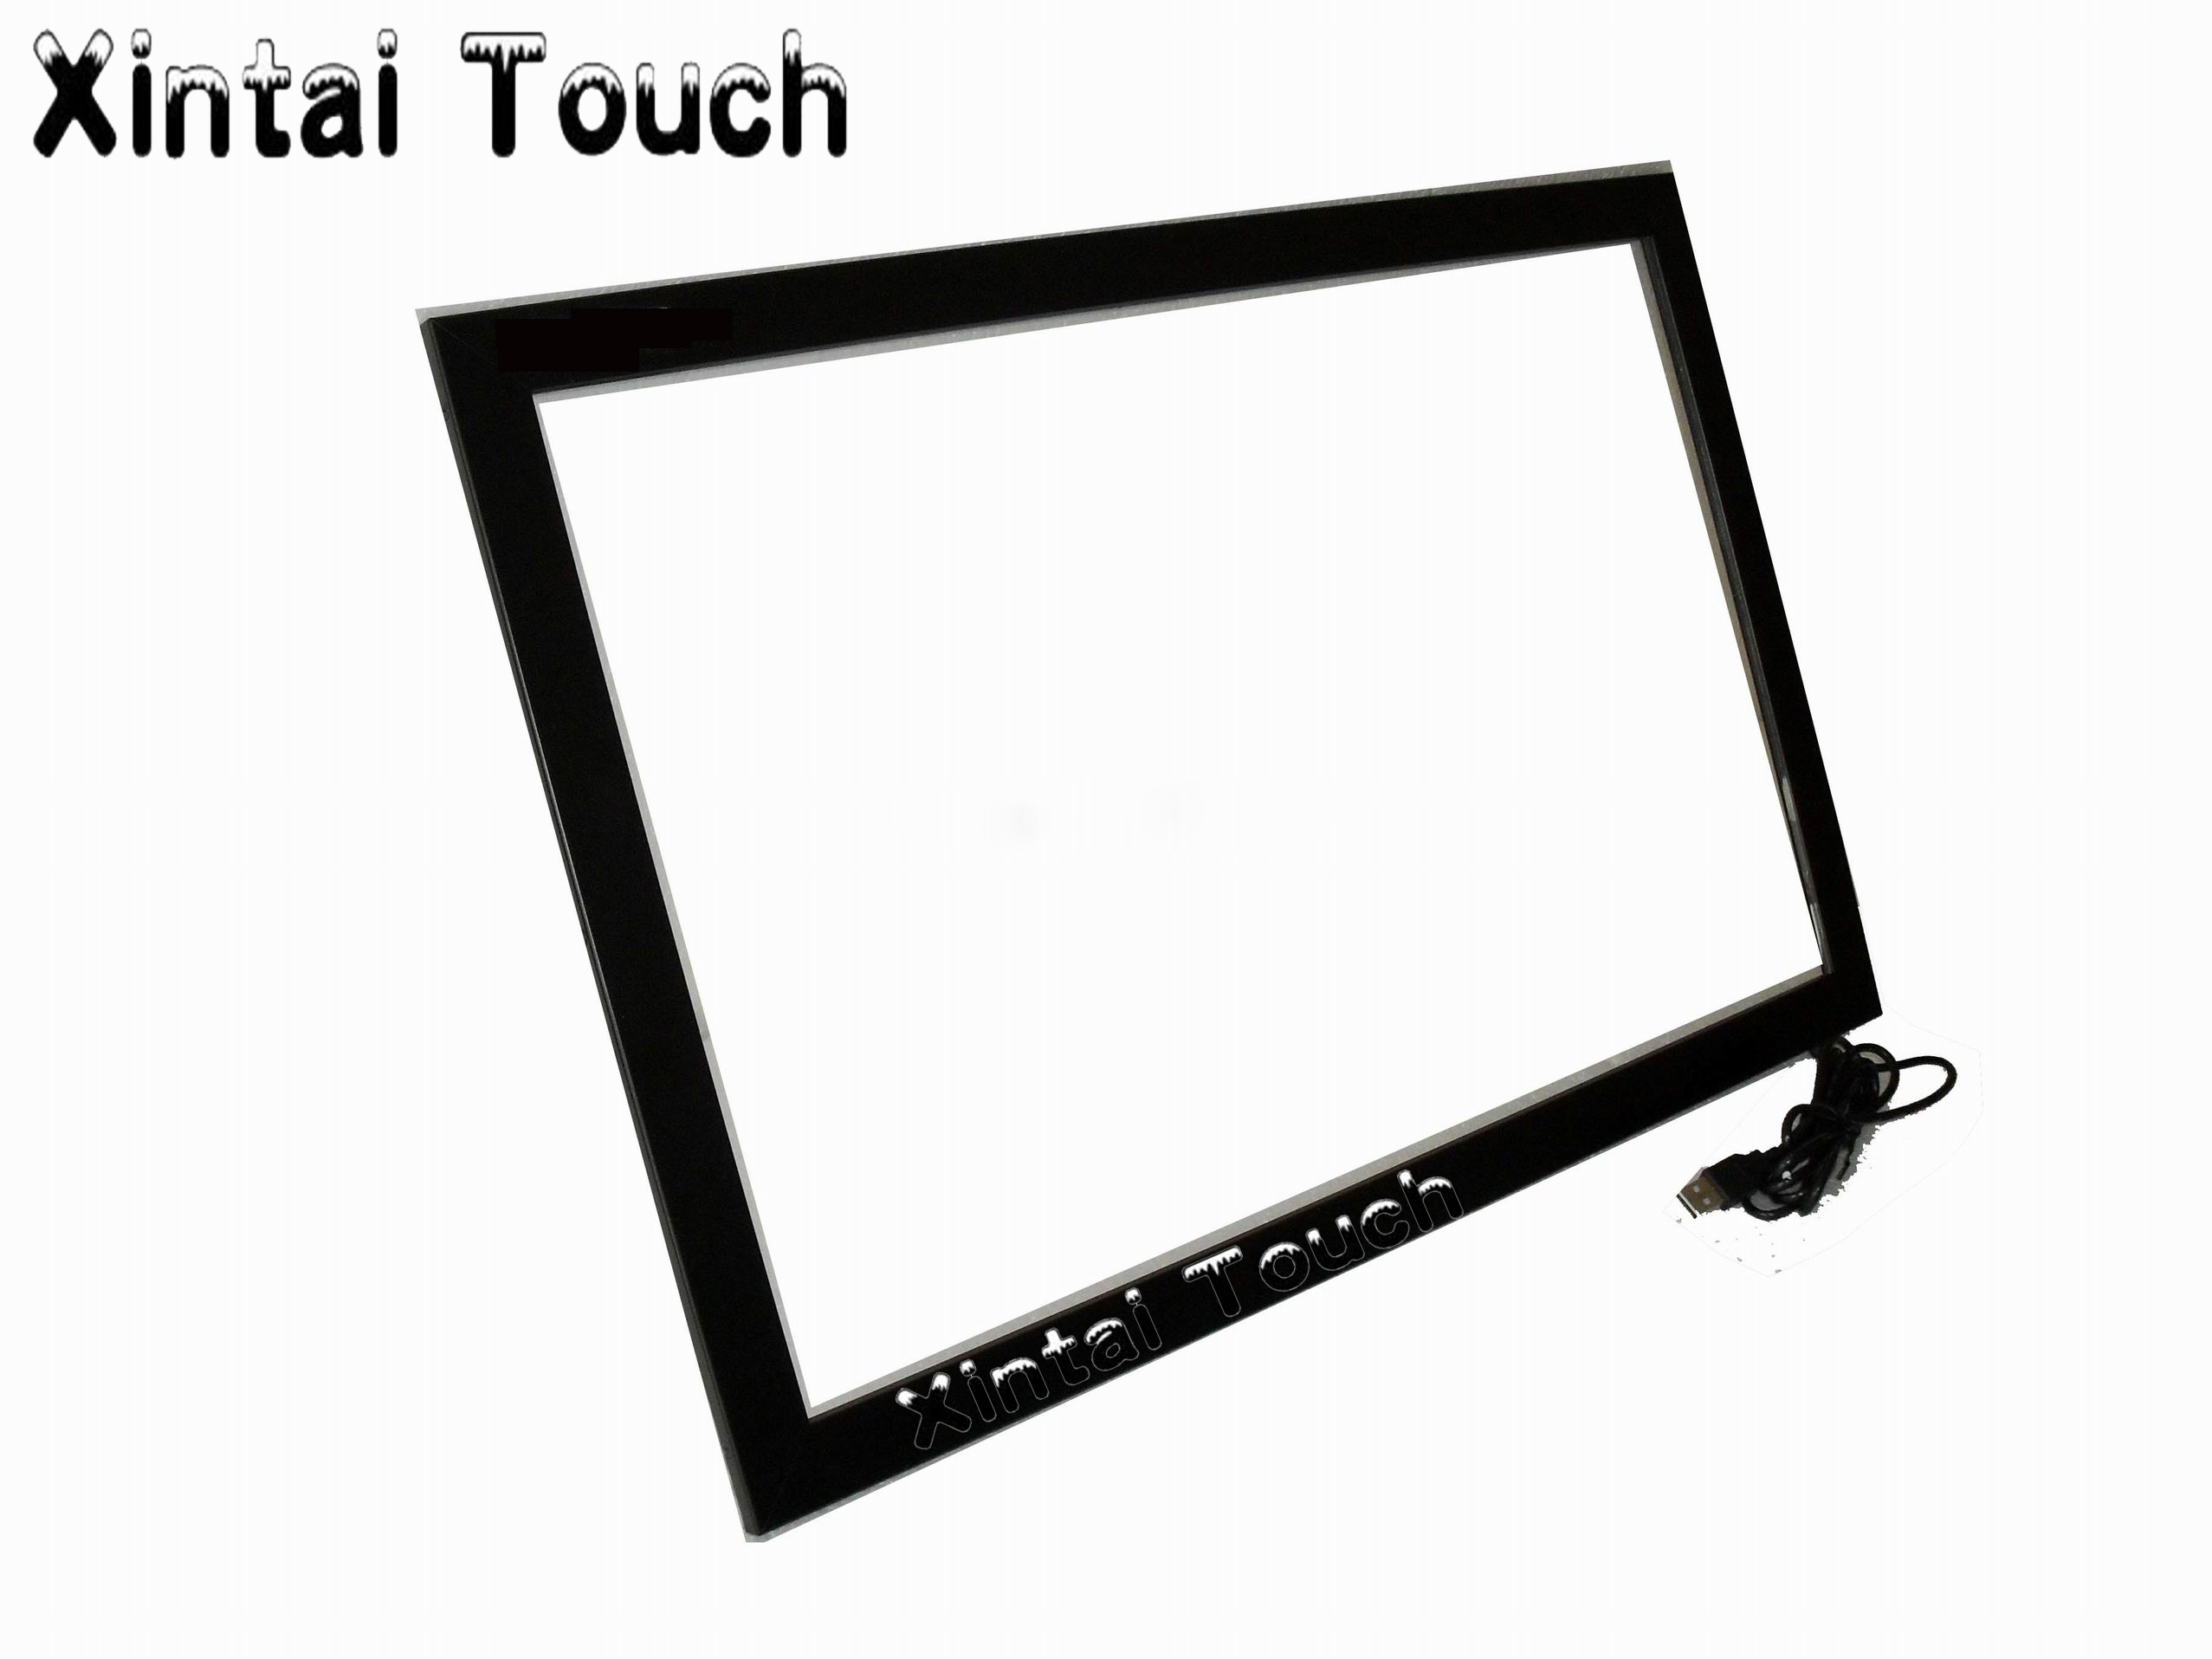 98 inch infrared Multi touch screen,10 touch points IR touch panel frame for smart tv,flat IR touch screen panel 32 inch high definition 2 points multi touch screen panel ir multi touch screen overlay for touch table kiosk etc